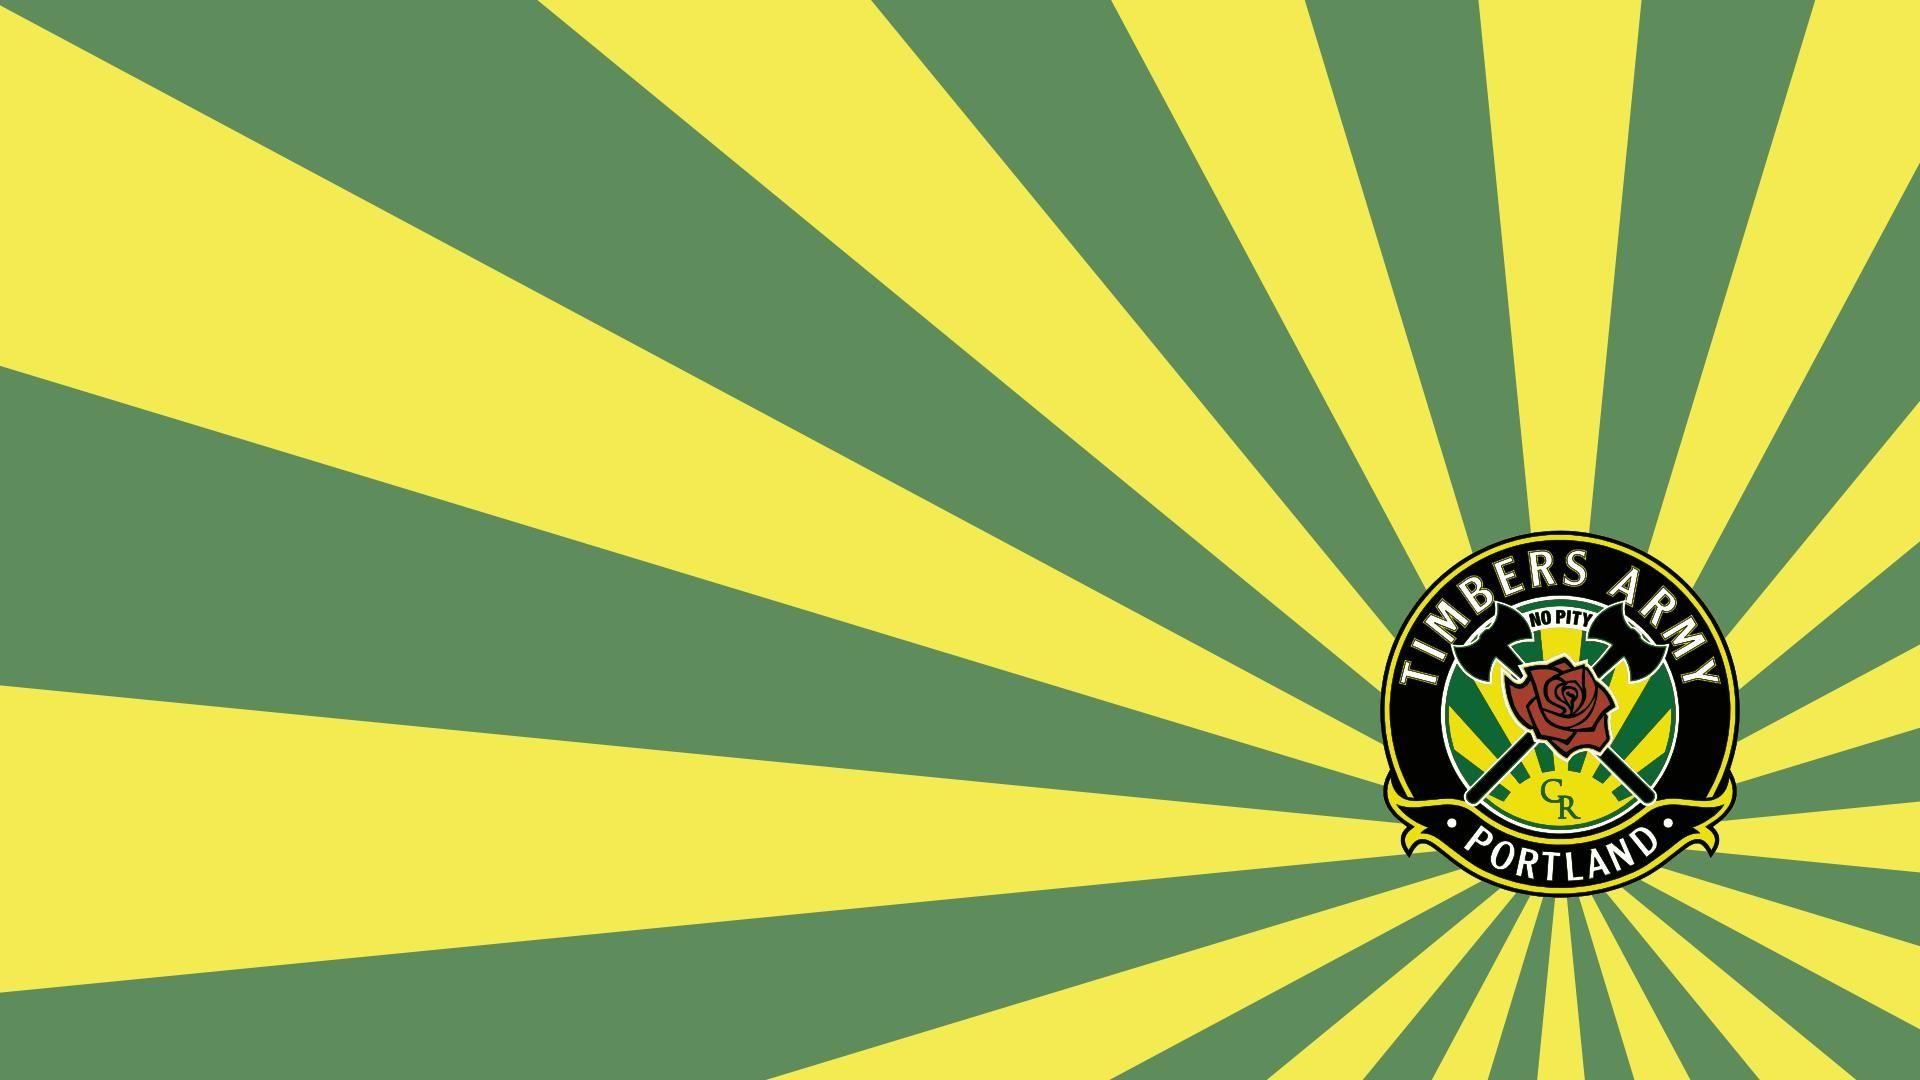 Portland Timbers wallpapers